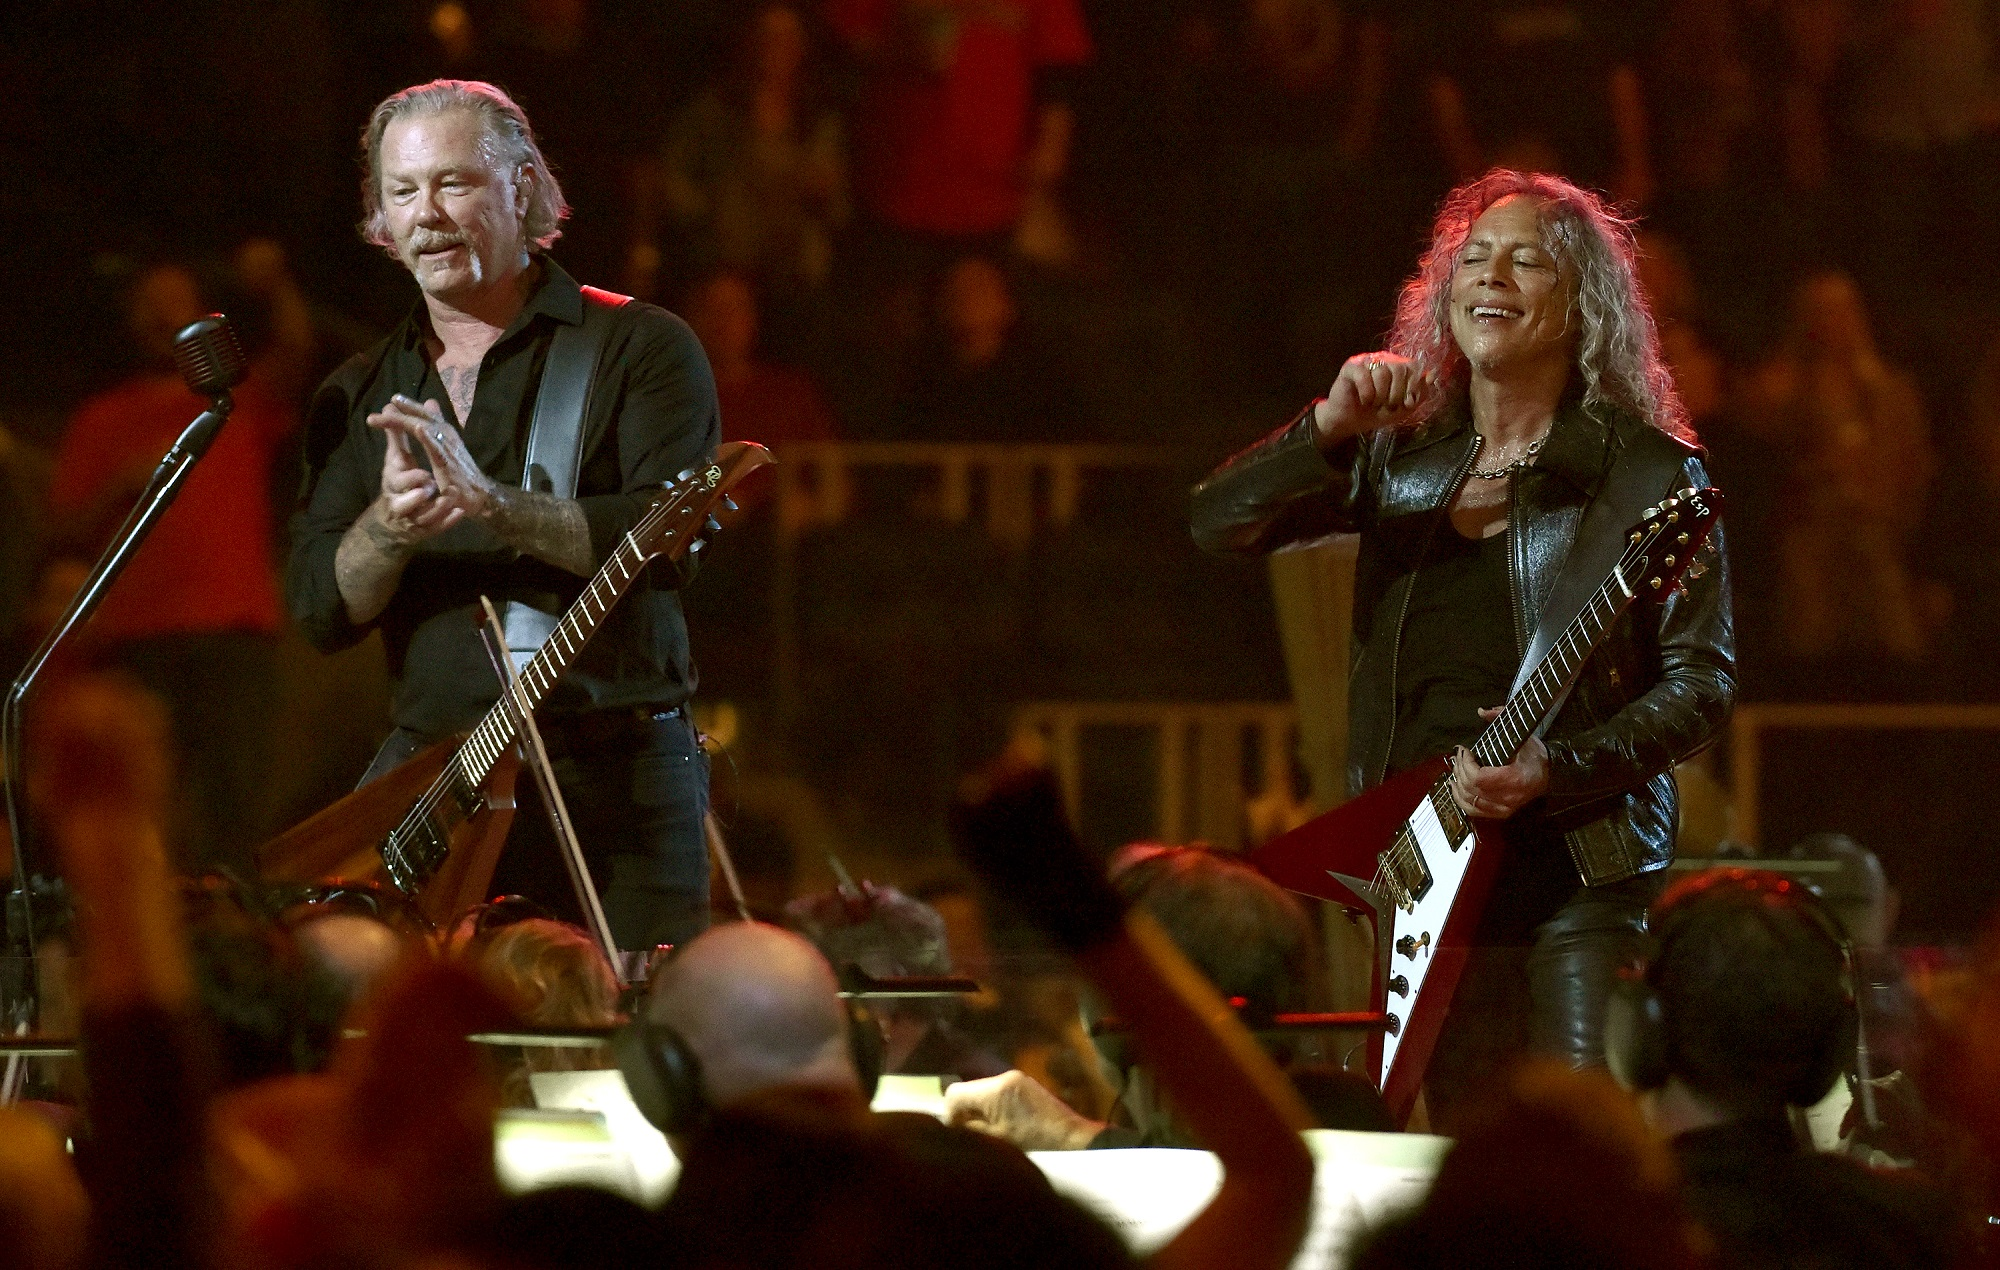 Metallica's 'S&M2' live concert film is returning to cinemas for one night only